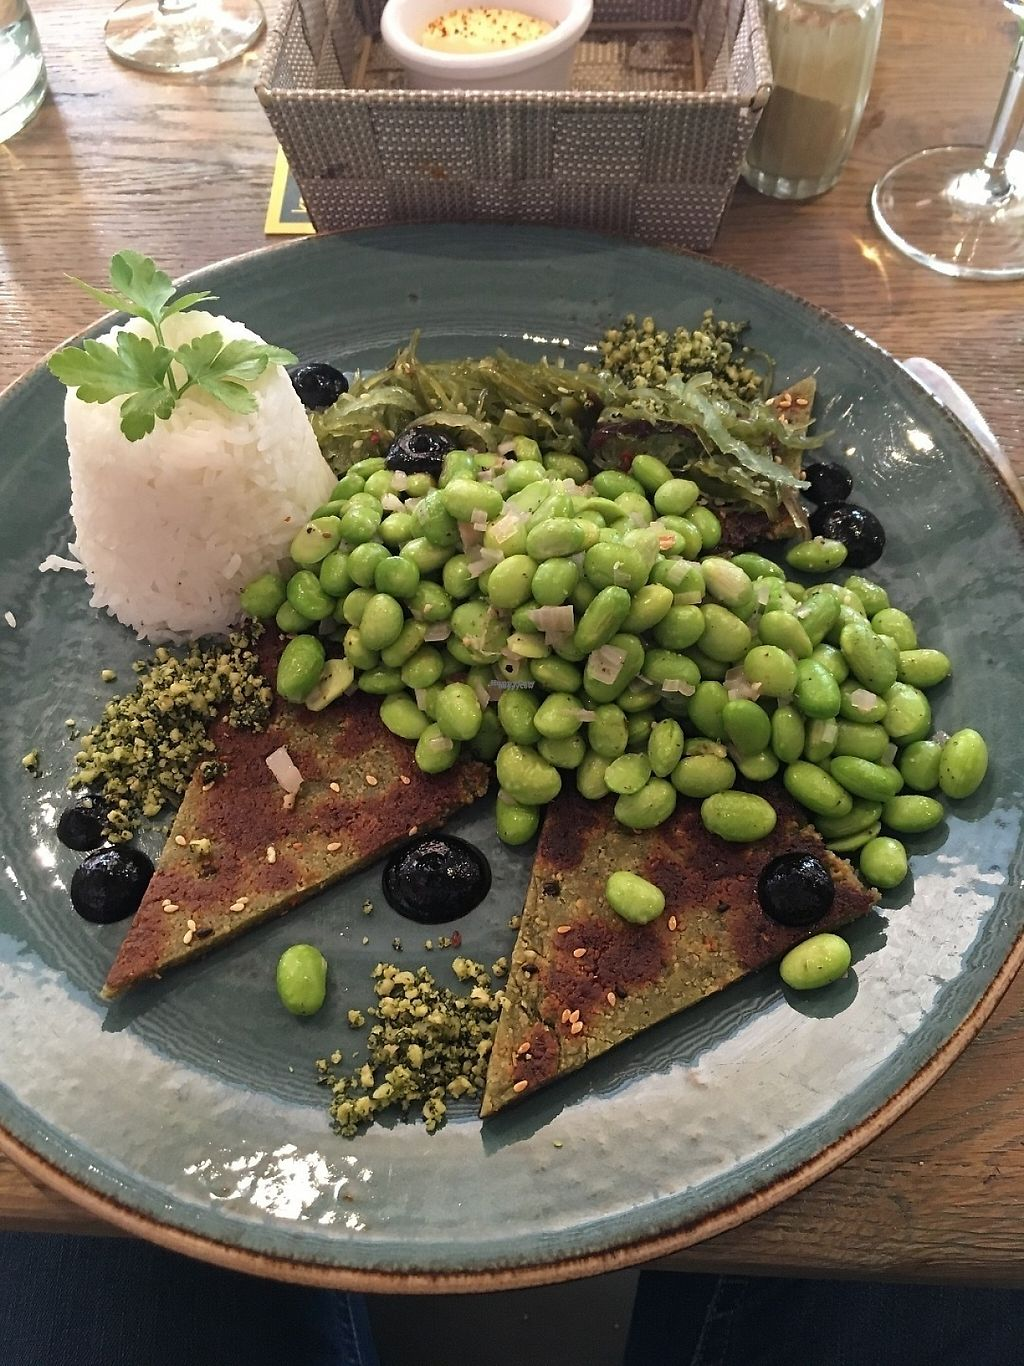 """Photo of Mykene  by <a href=""""/members/profile/aertskato"""">aertskato</a> <br/>vegan fish filet with soy beans, rice, wakame and pistachios <br/> April 14, 2017  - <a href='/contact/abuse/image/50789/247944'>Report</a>"""